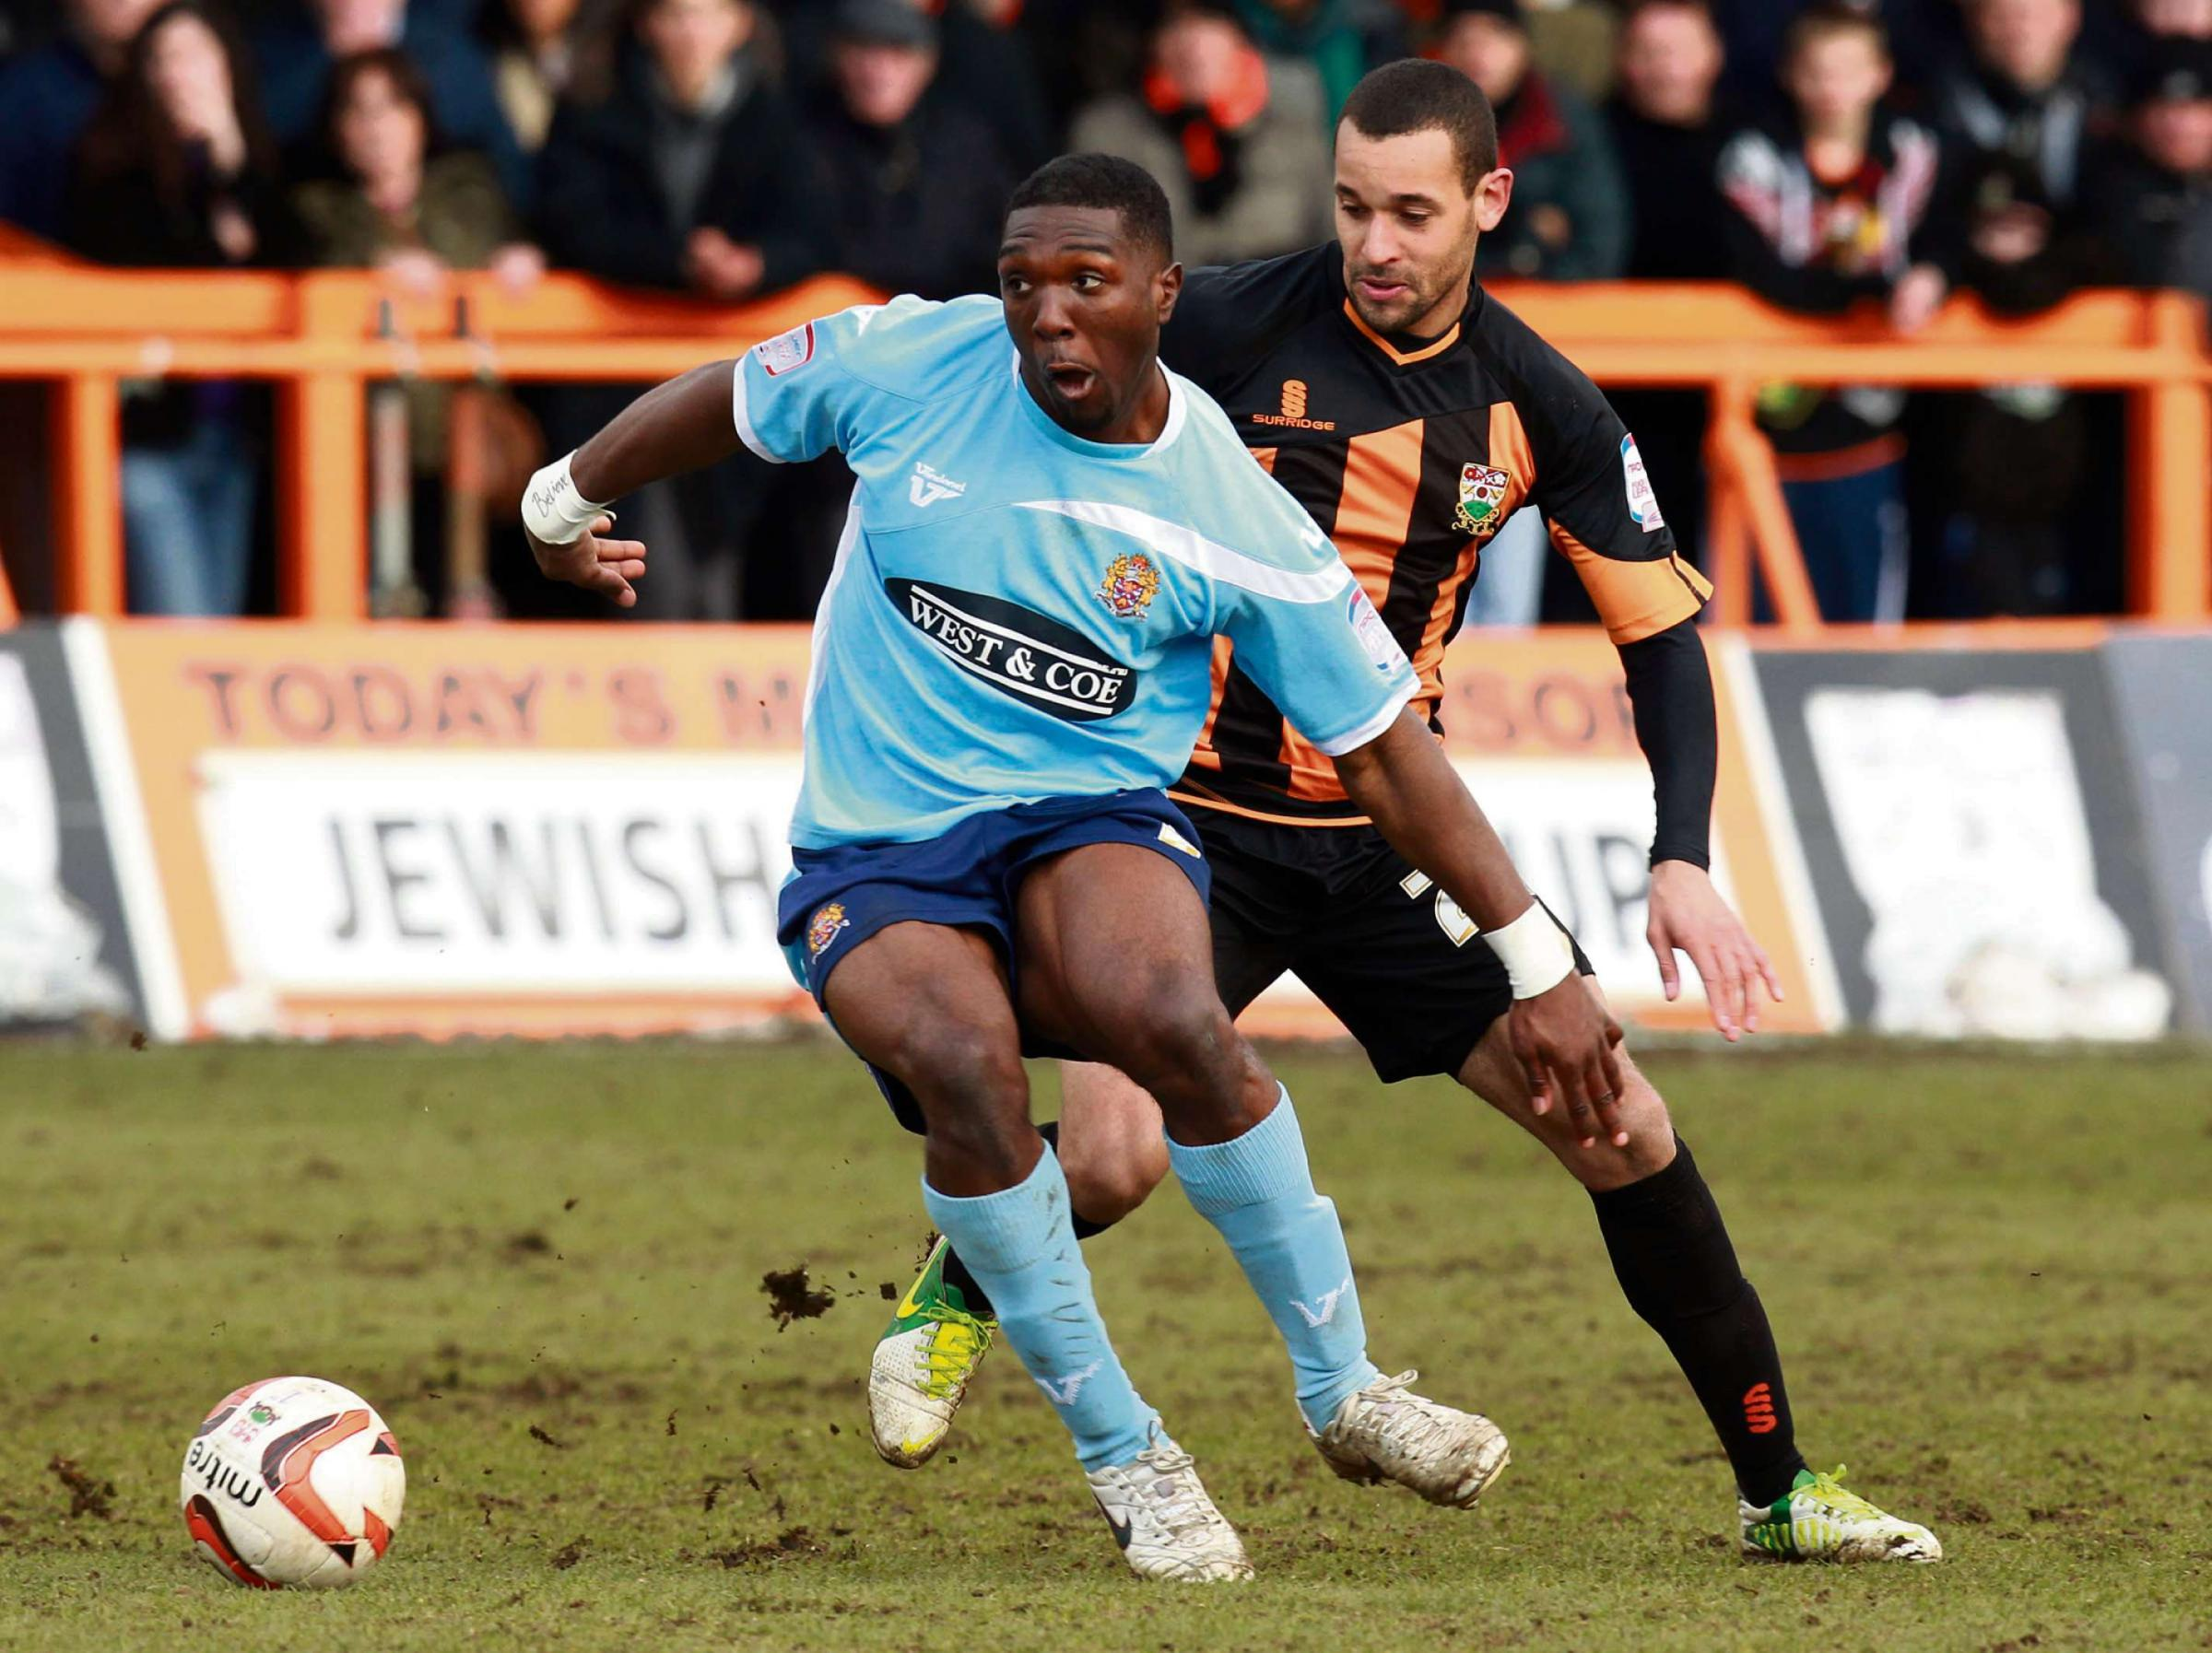 Barnets Curtis Weston (right) and Dagenham's Femi llesanmi battle for the ball during the npower League Two match at the Underhill Stadium, Barnet.